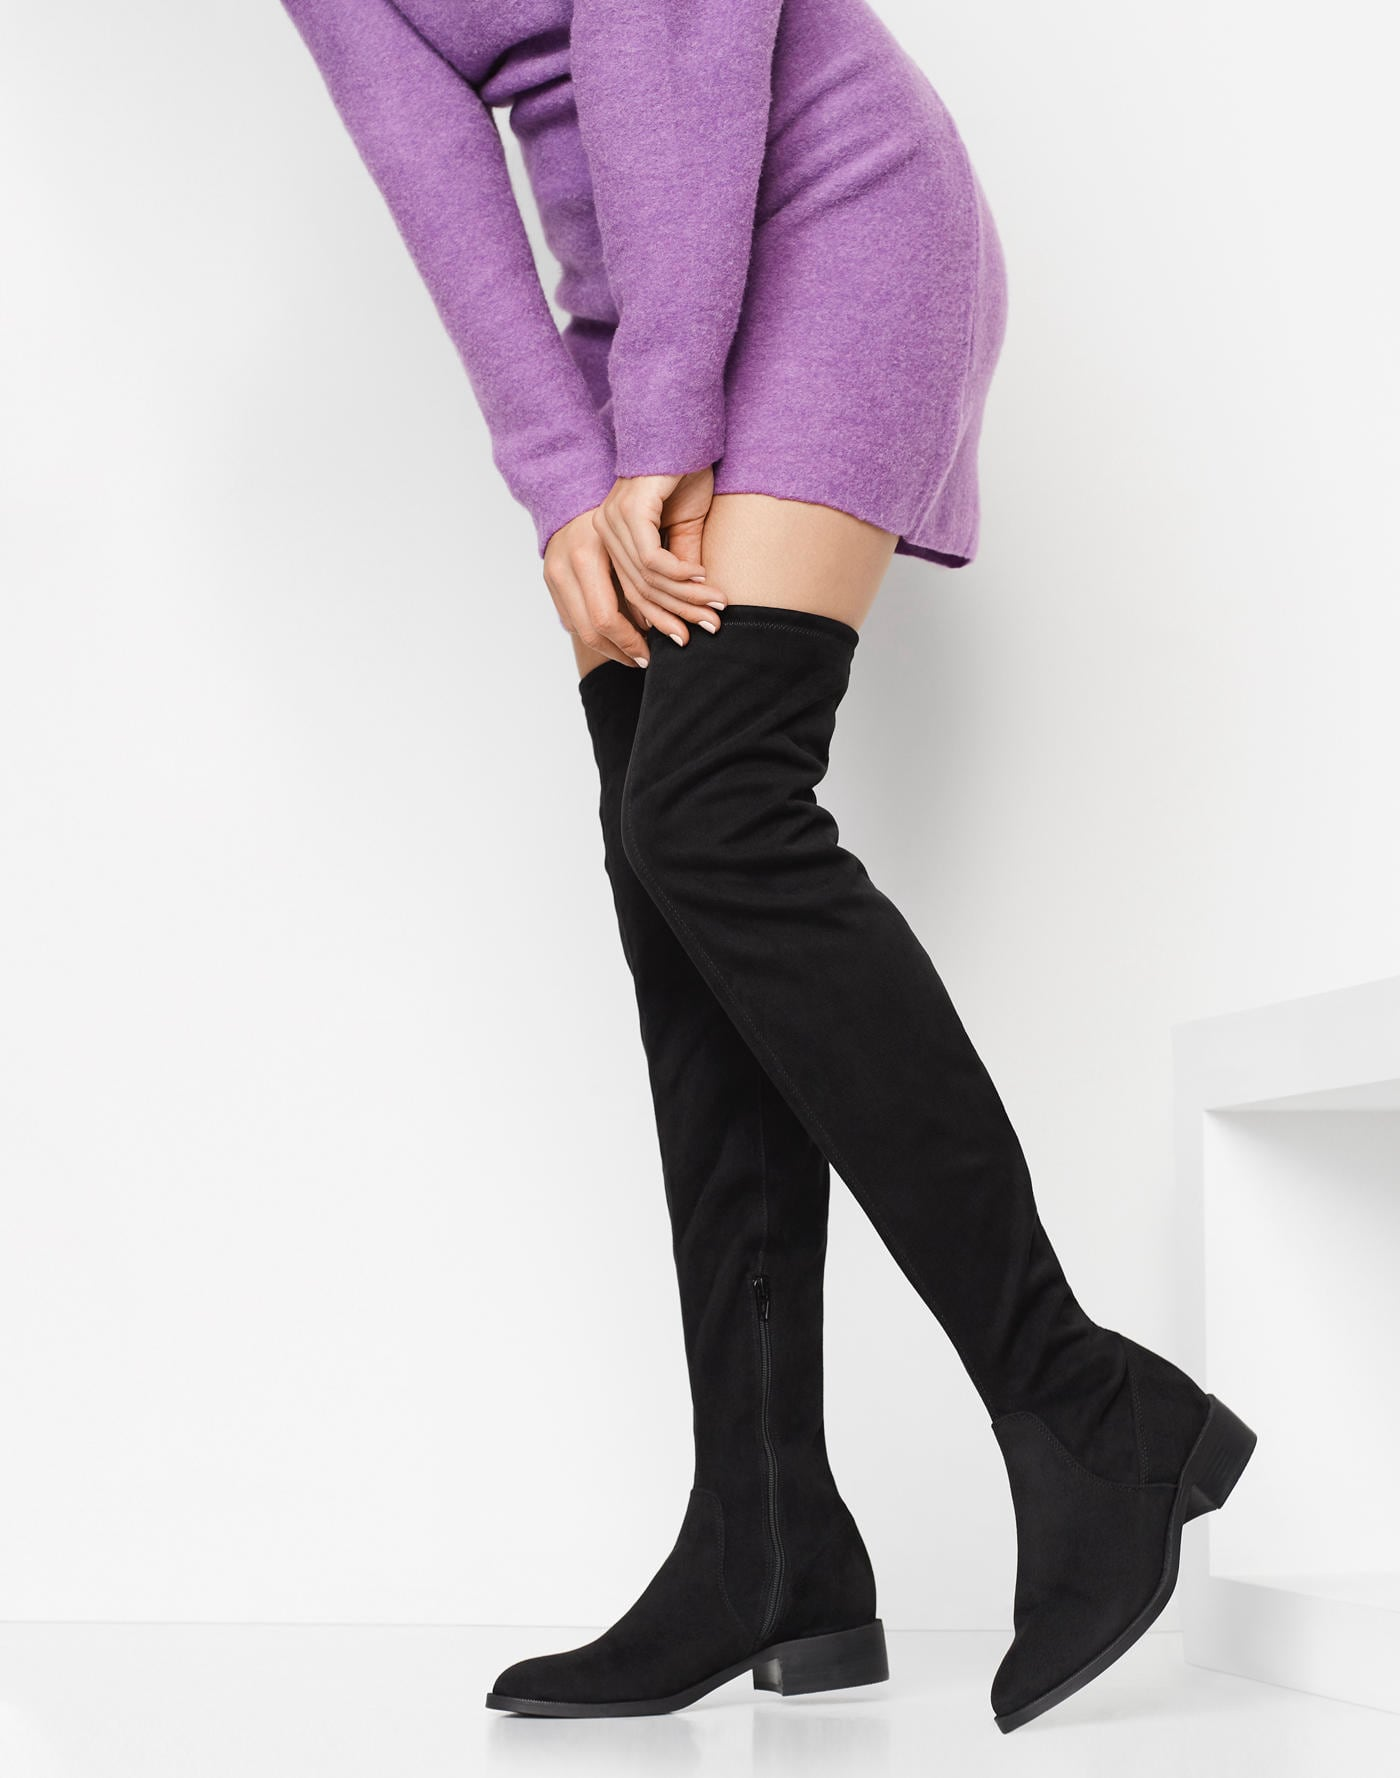 Over-The-Knee Boots \u0026 Thigh High Boots